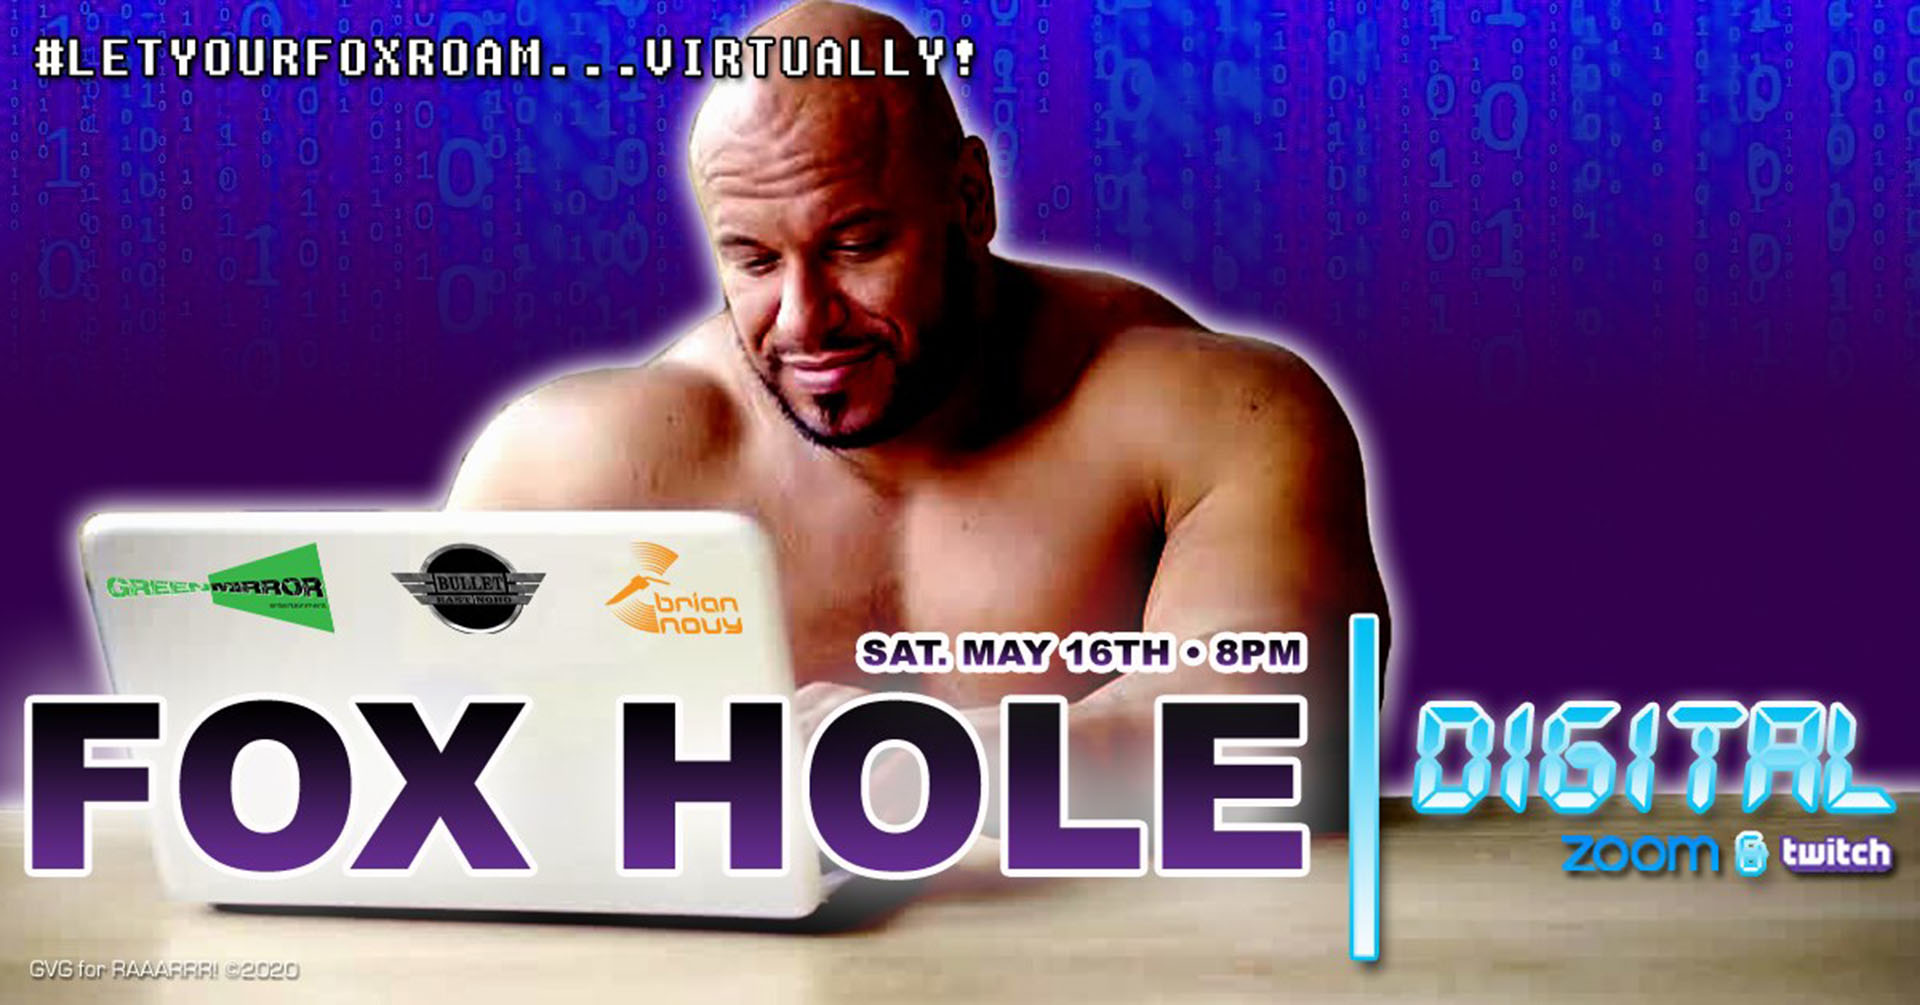 The Bullet Bar and Green Mirror Entertainment Present FOX HOLE--DIGITAL via ZOOM and twitch: Saturday, May 16, 2020 at 10 PM!